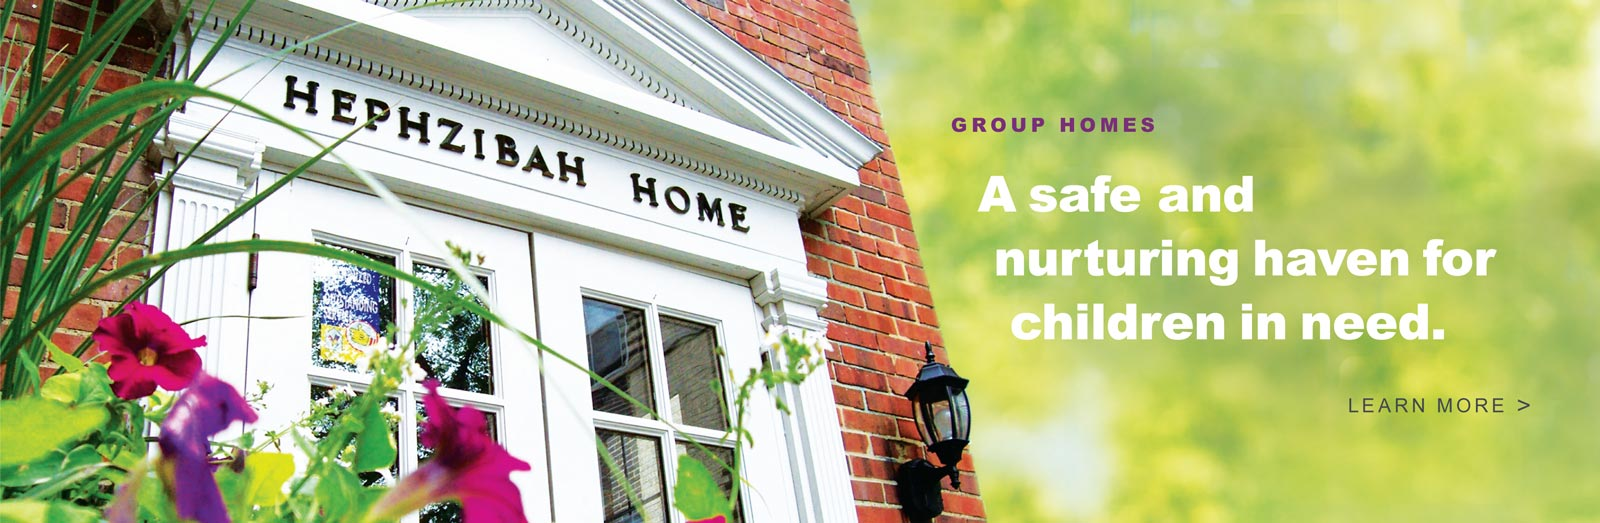 Group Homes - A safe and nurturing haven for children in need